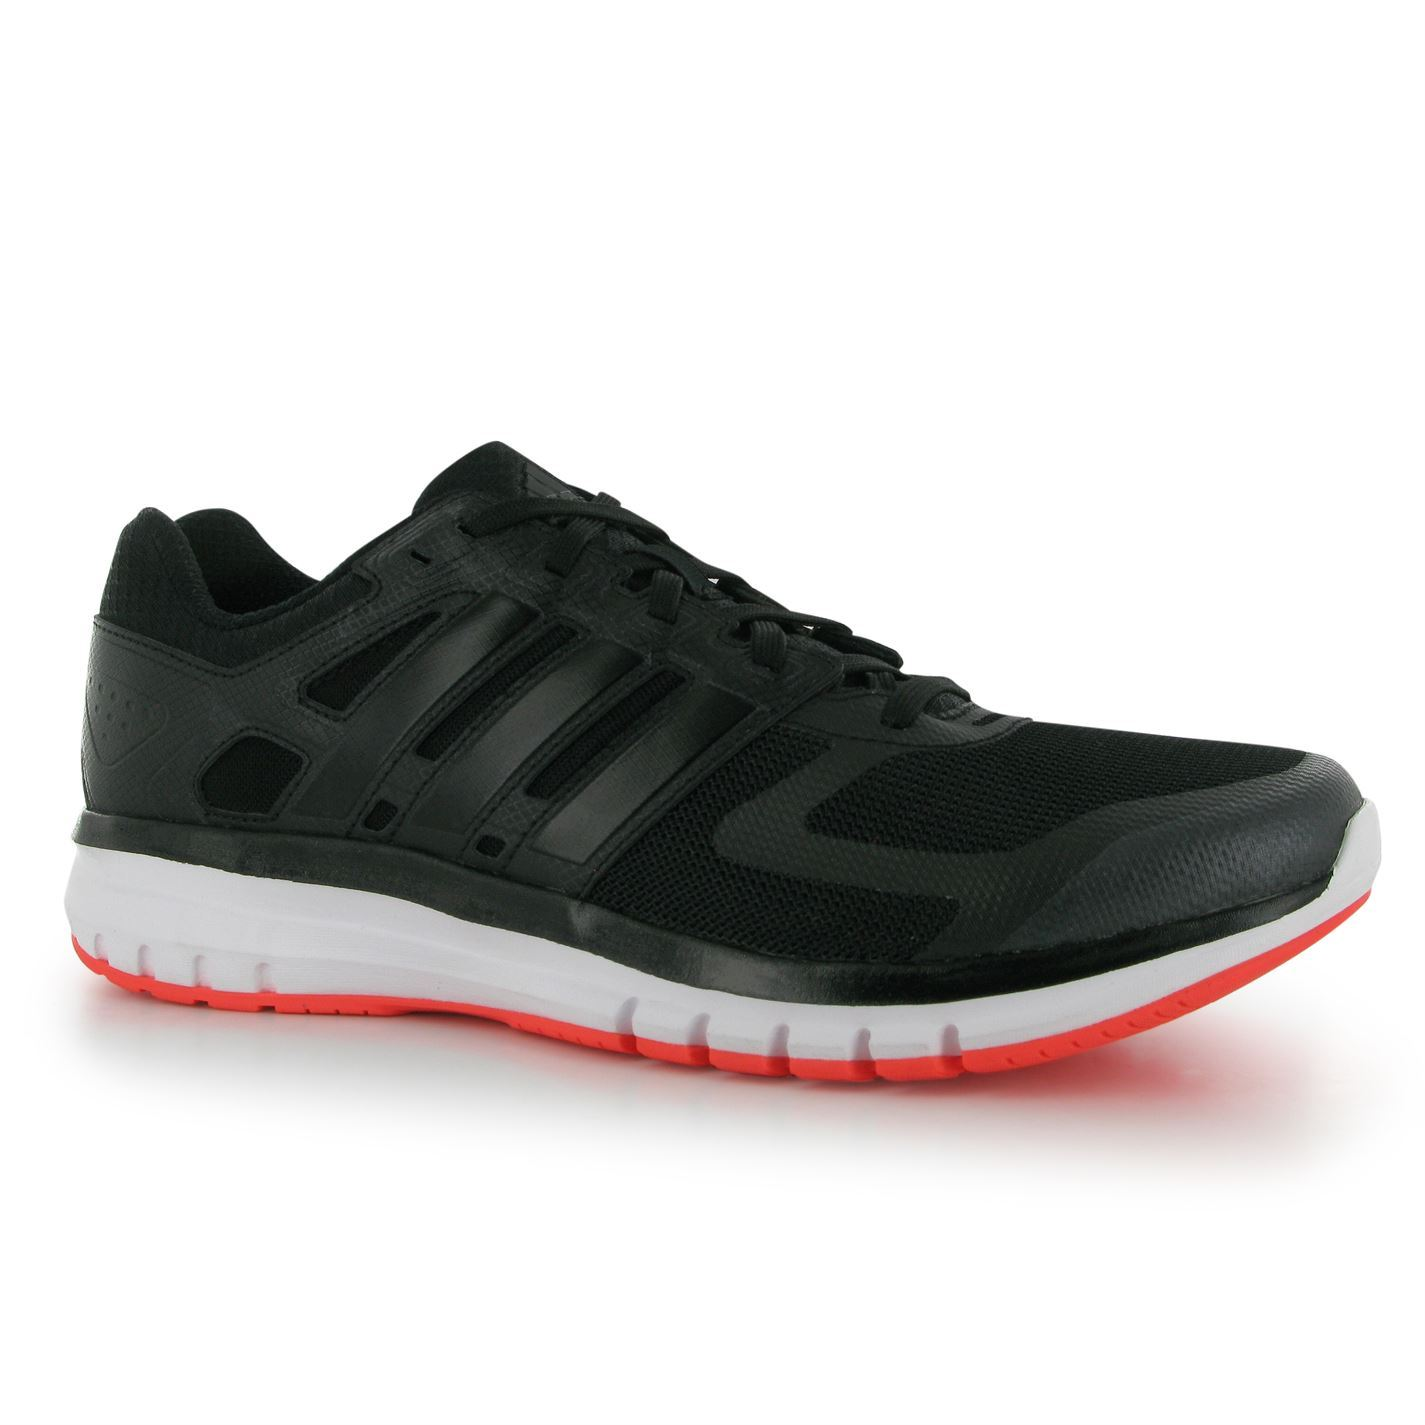 11a478b1a74 adidas duramo 8 trainer combinations for women